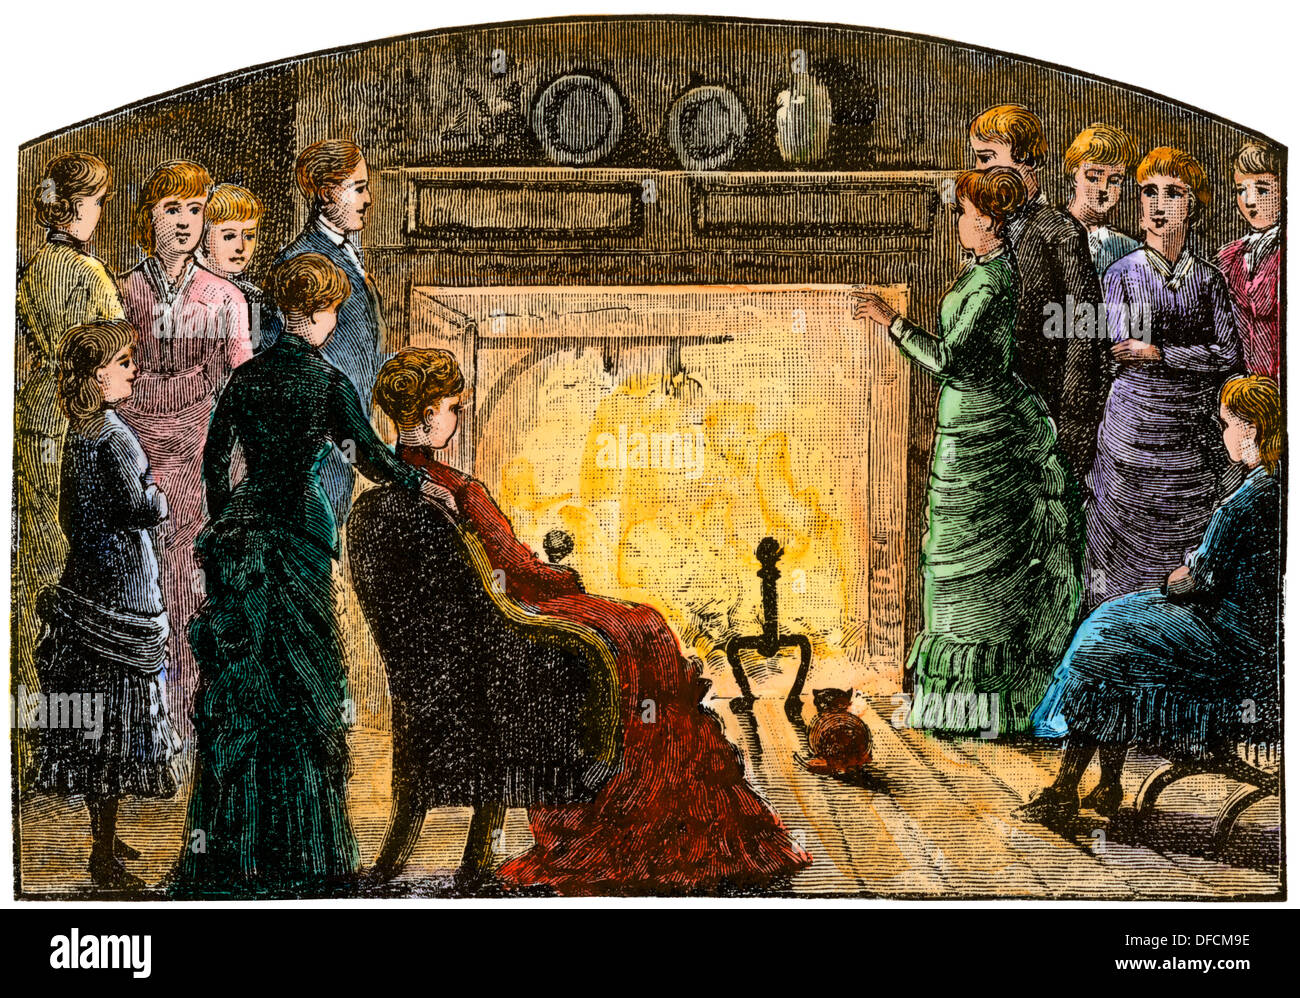 People gathered around the Wayside Inn hearth, Concord, MA, 1800s. Hand-colored woodcut - Stock Image